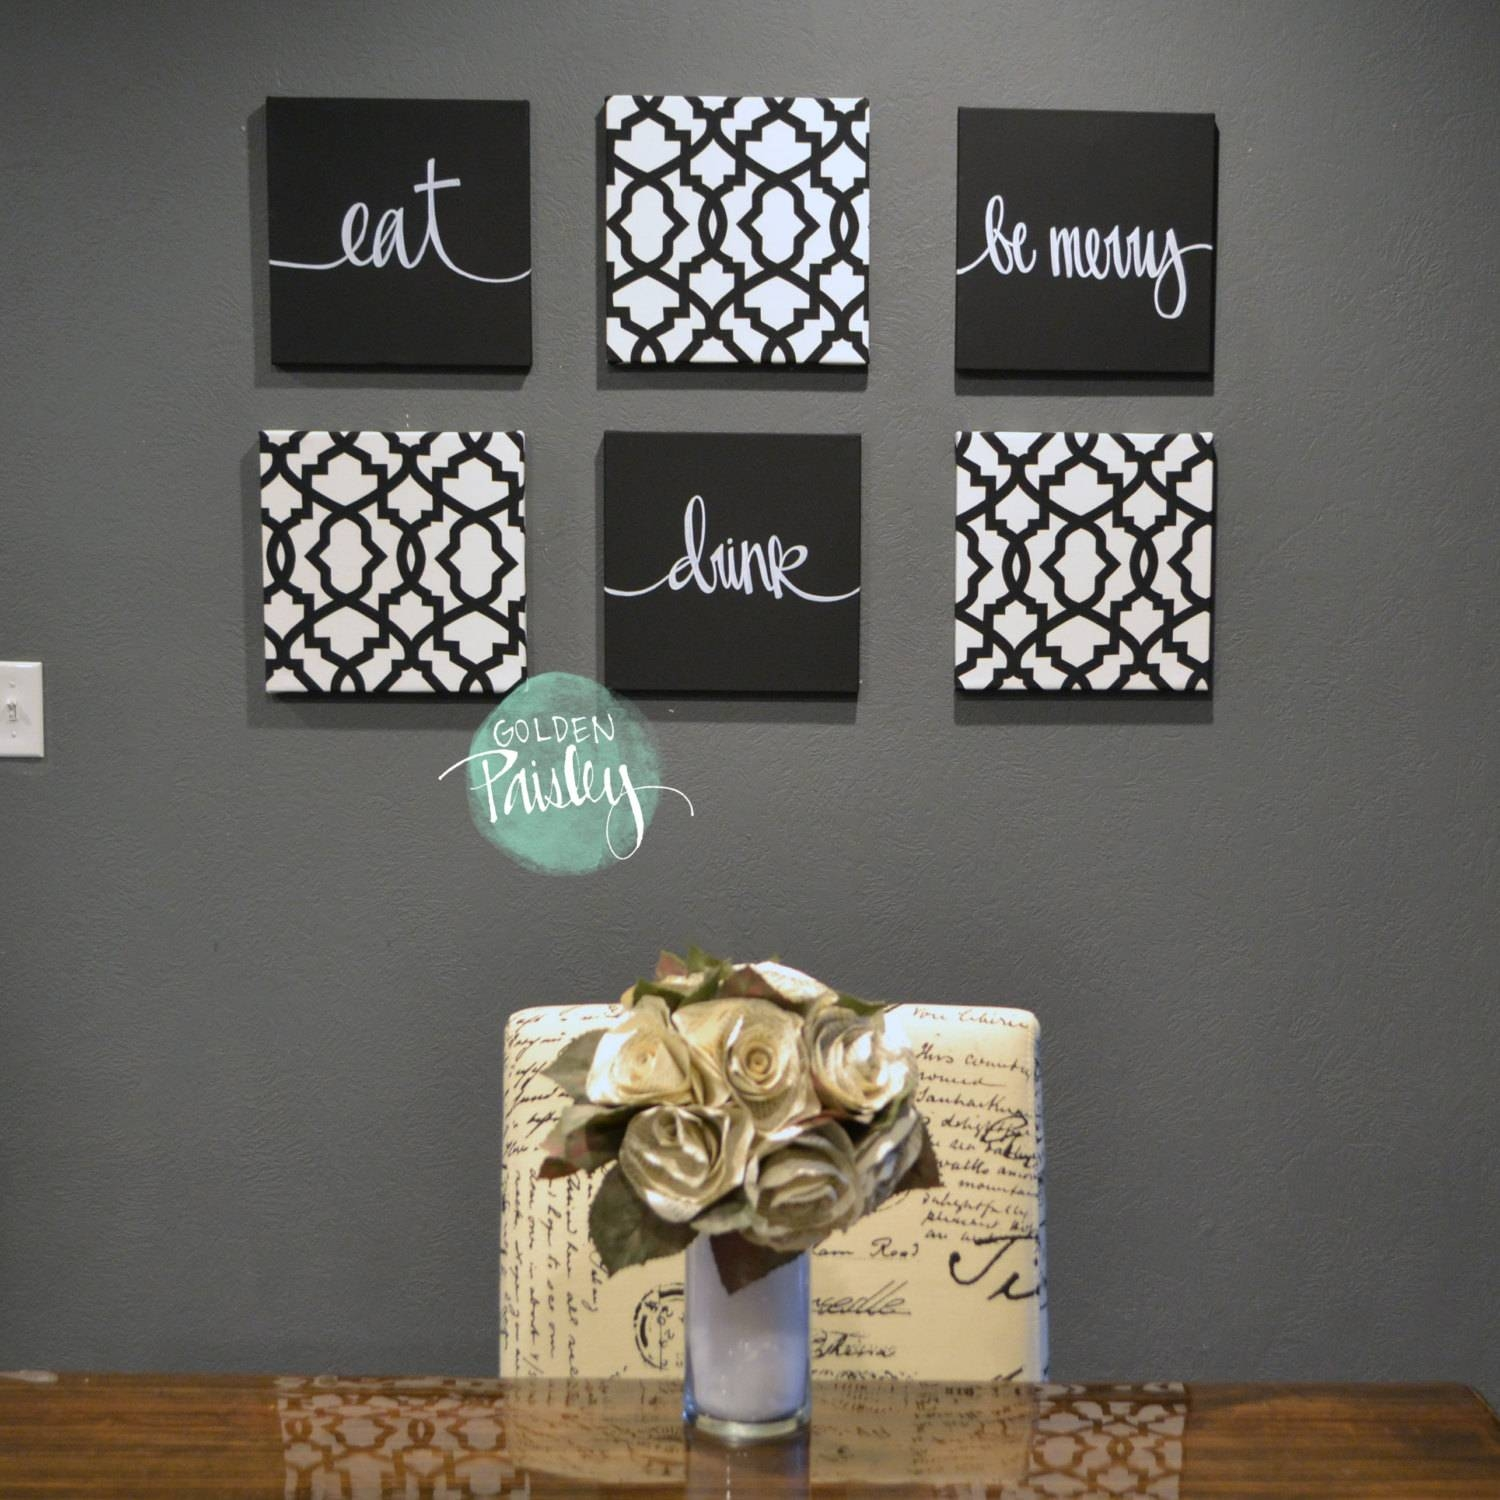 Black White Eat Drink & Be Merry Wall Art 6 Pack Canvas Wall Intended For Current Black And White Wall Art Sets (View 6 of 20)